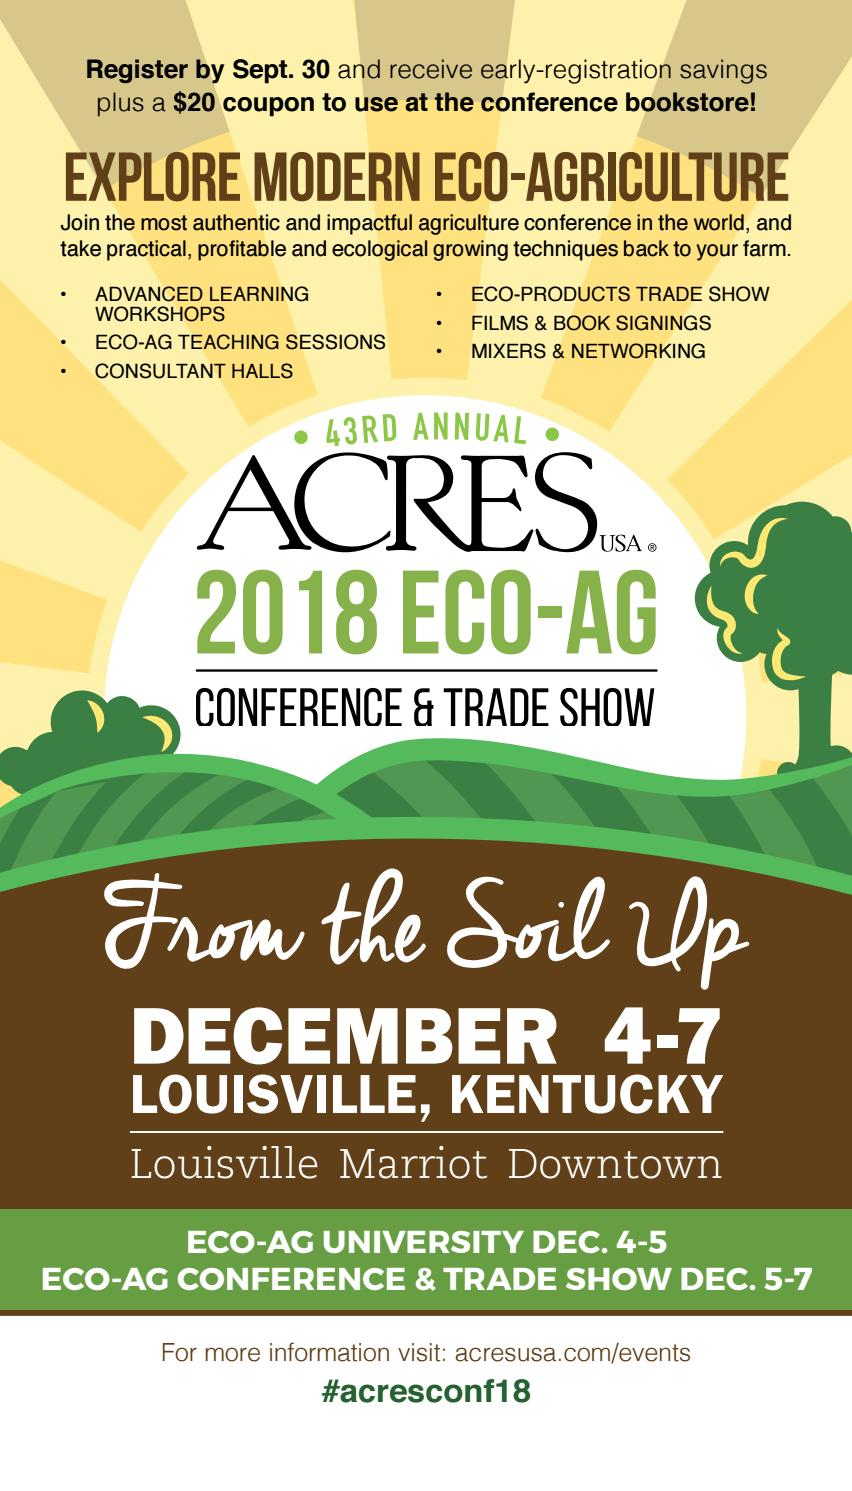 2018 Acres U S A  Eco-Ag Conference & Trade Show Brochure by